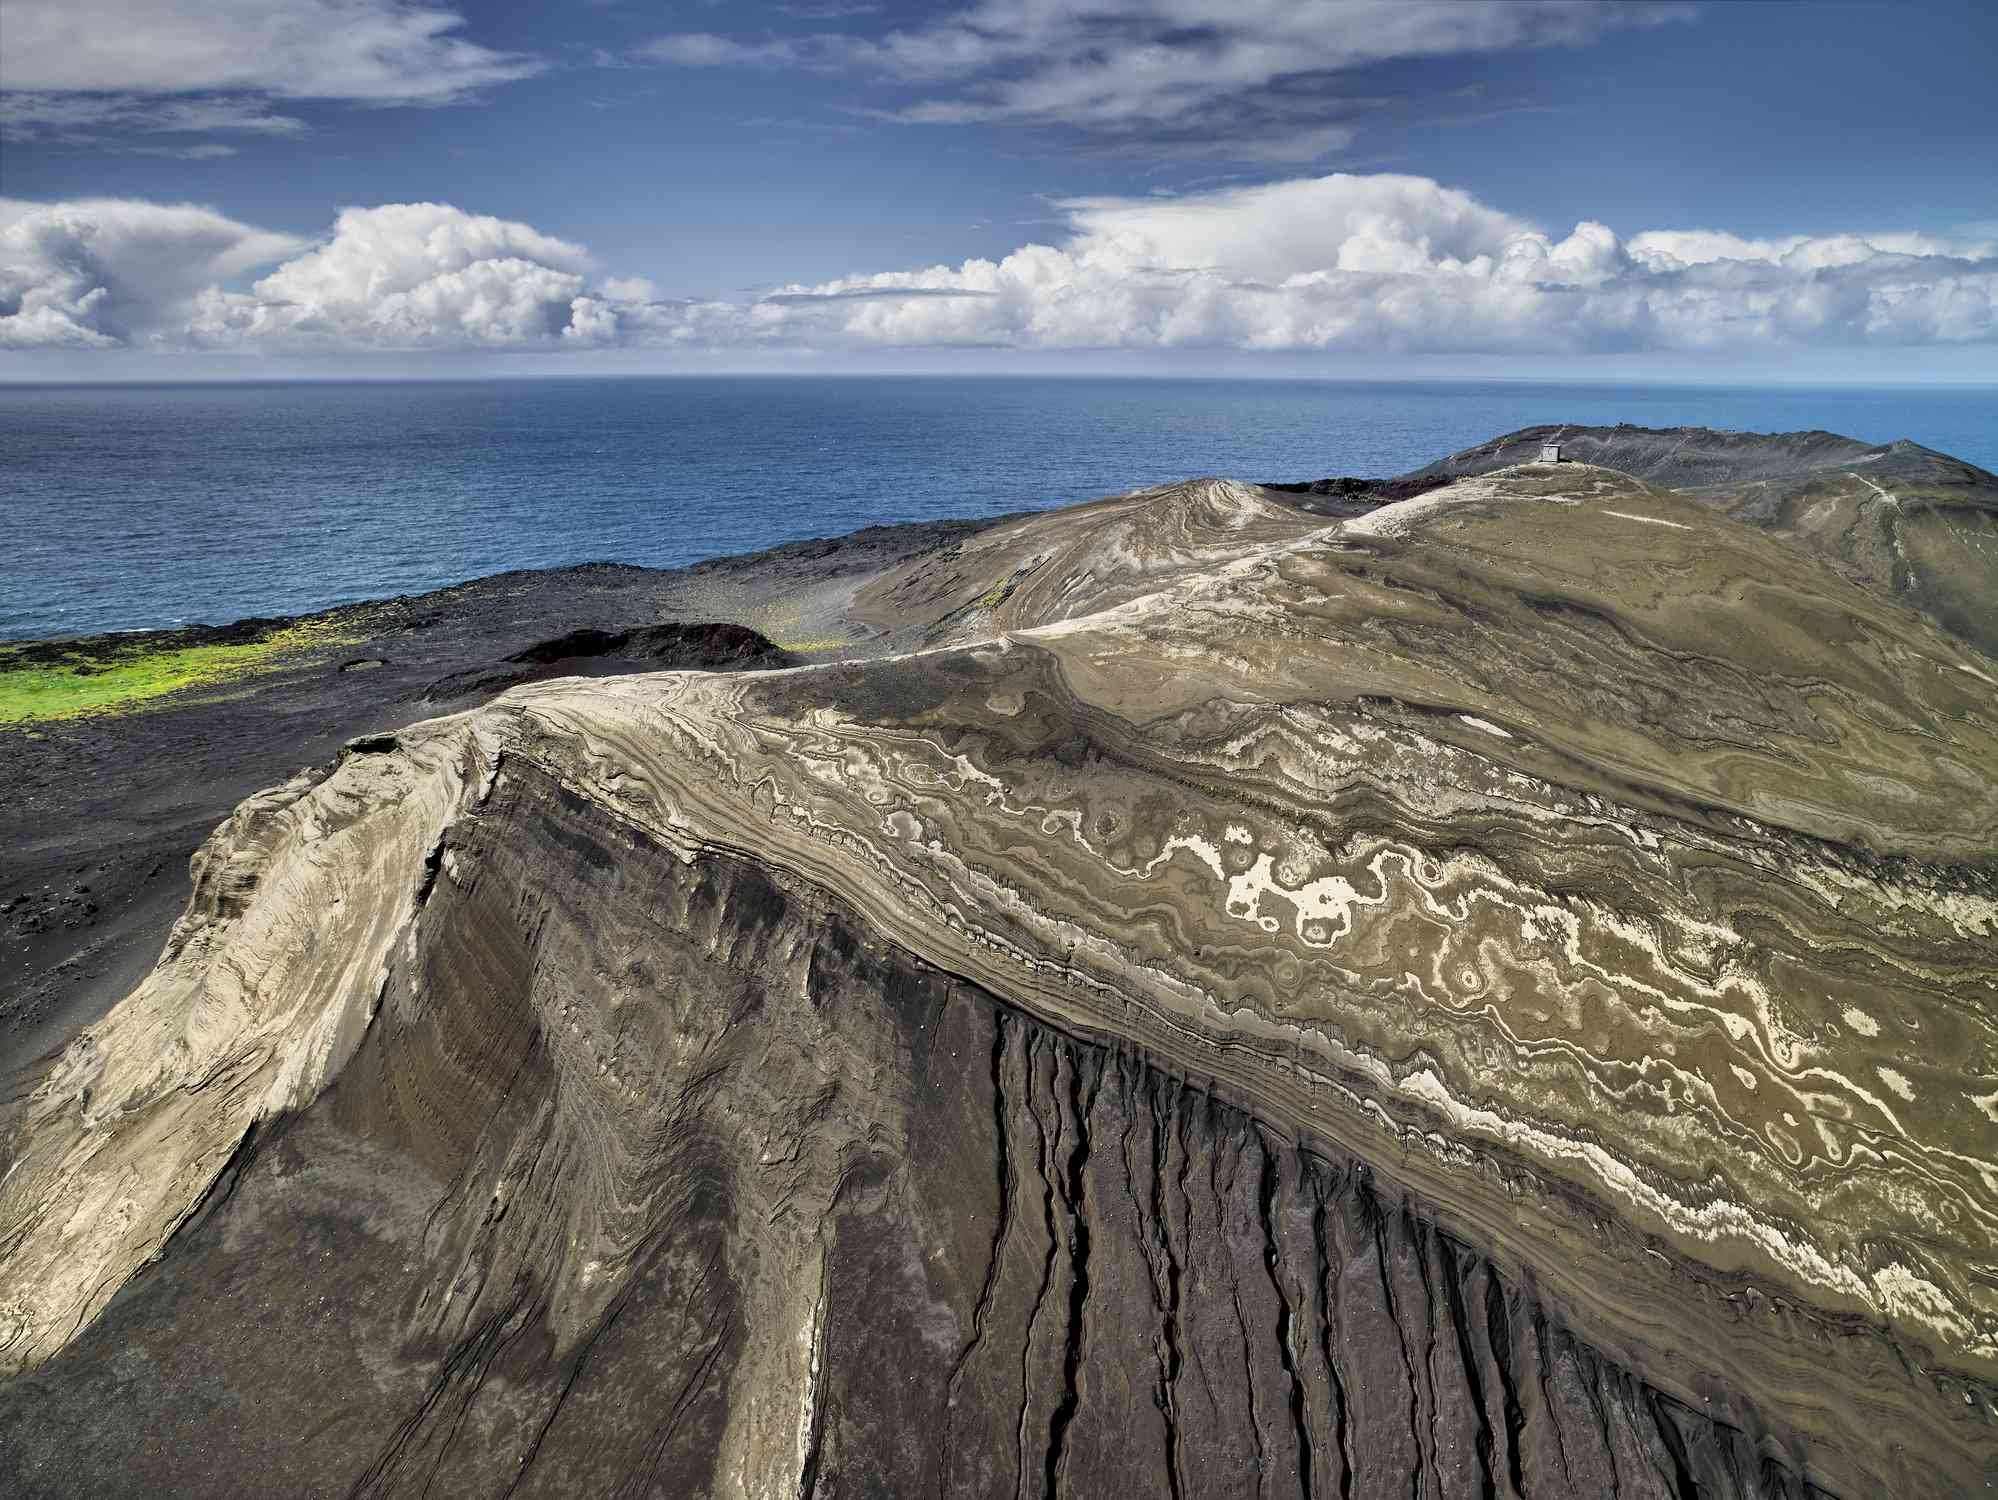 Surtsey Island, a volcanic island off the southern coast of Iceland